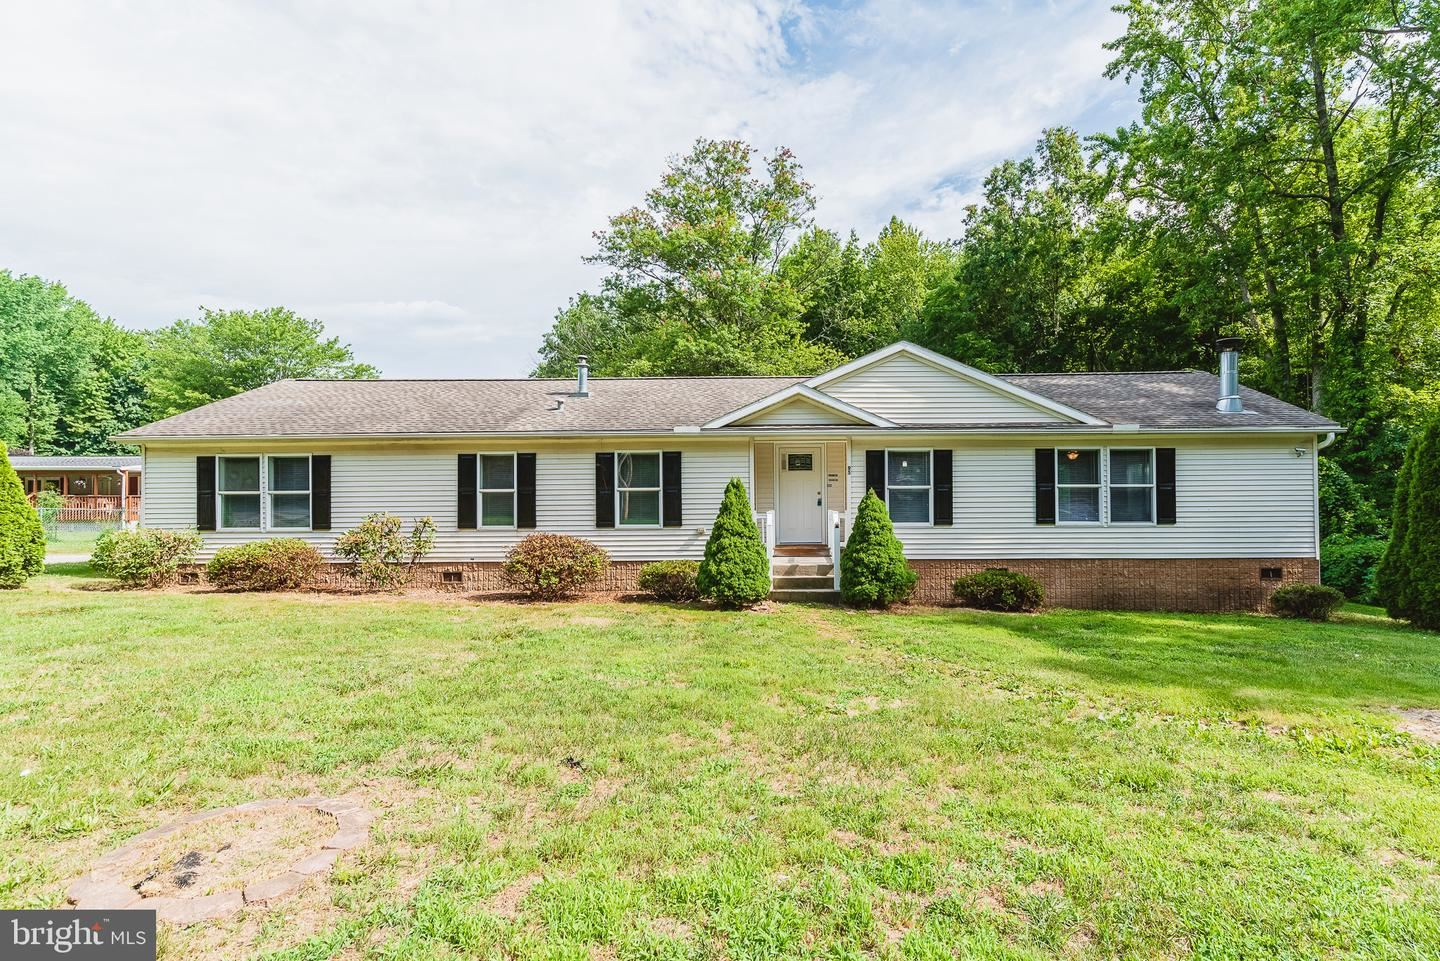 95 NAZARENE CAMP RD, North East, MD 21901 - MLS#: MDCC2000346